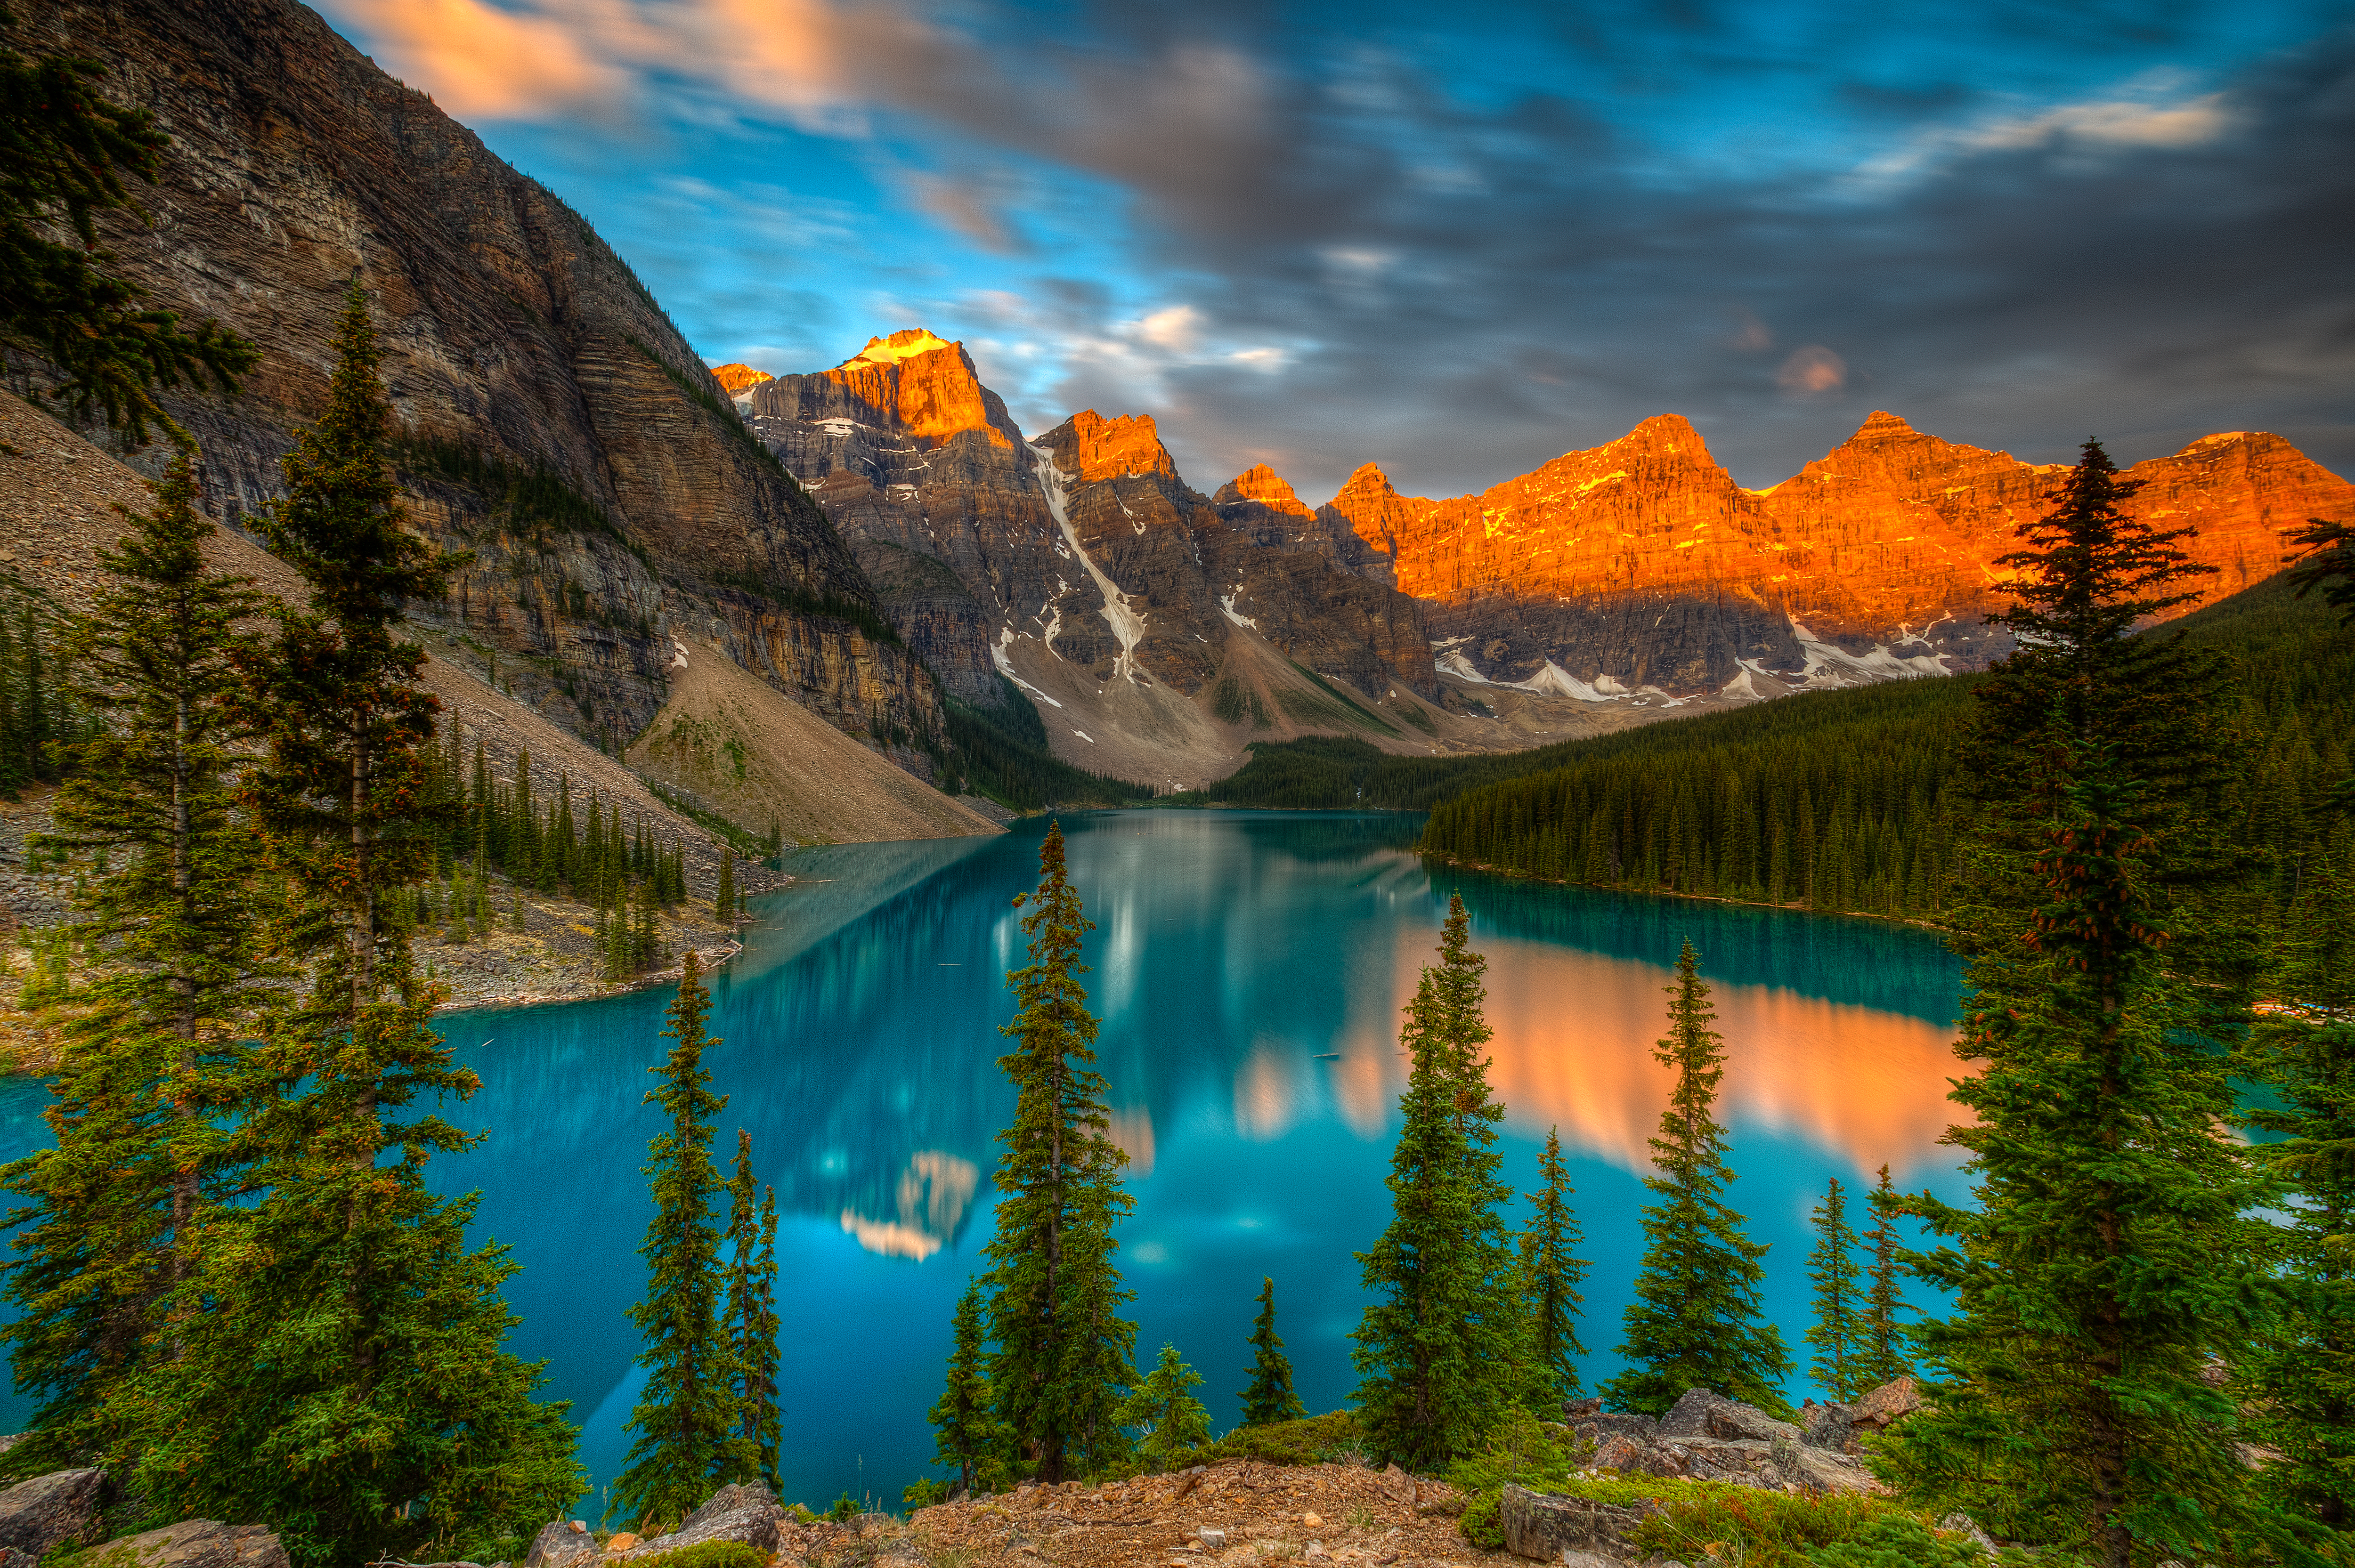 36 Moraine Lake Hd Wallpapers Background Images